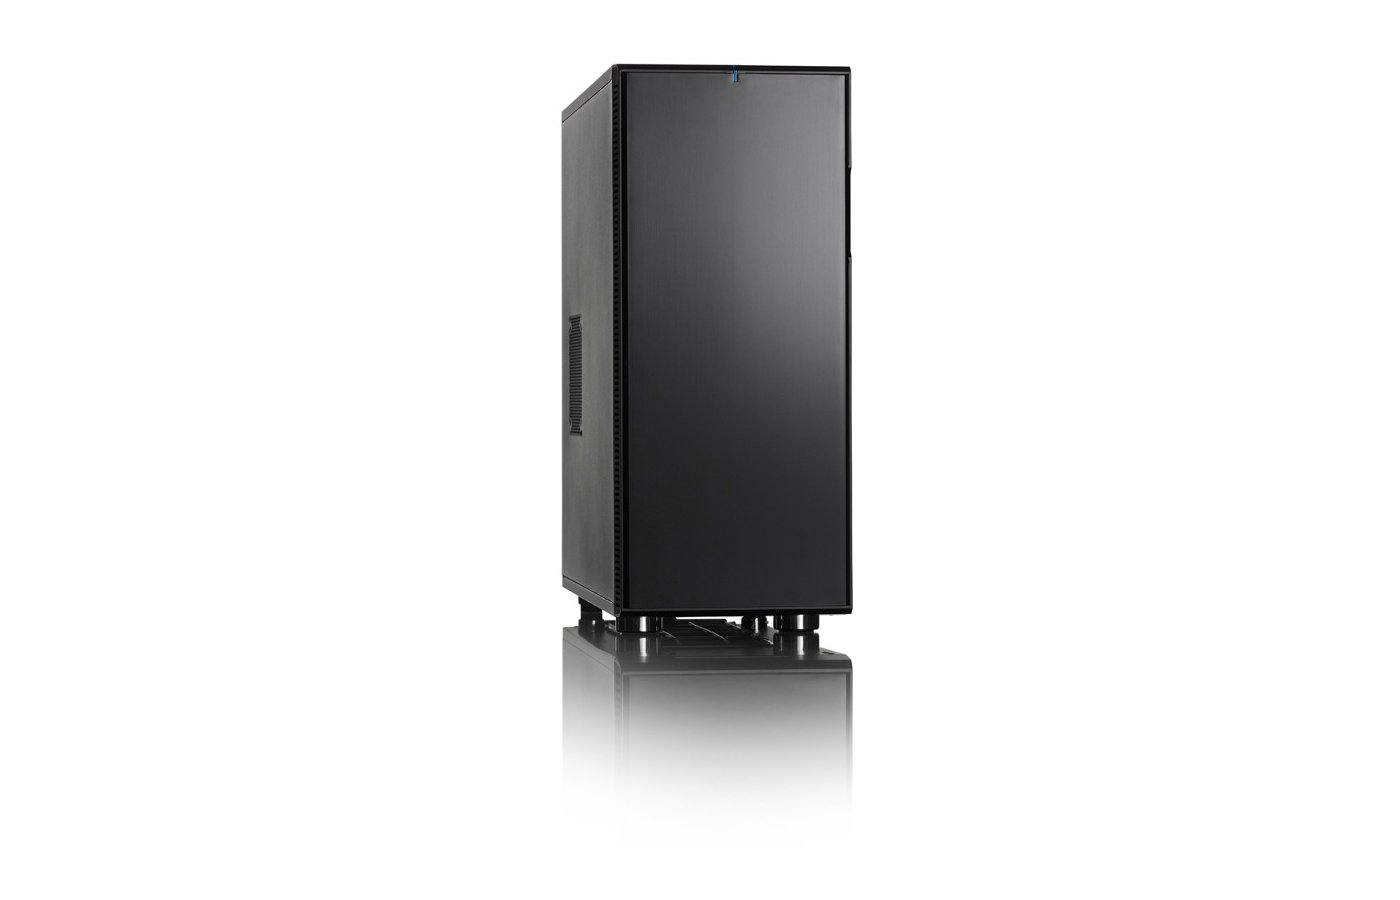 Корпус Fractal Design Define XL R2 черный w/o PSU XL-ATX 3x140mm 2xUSB2.0 2xUSB3.0 audio front door bott PS